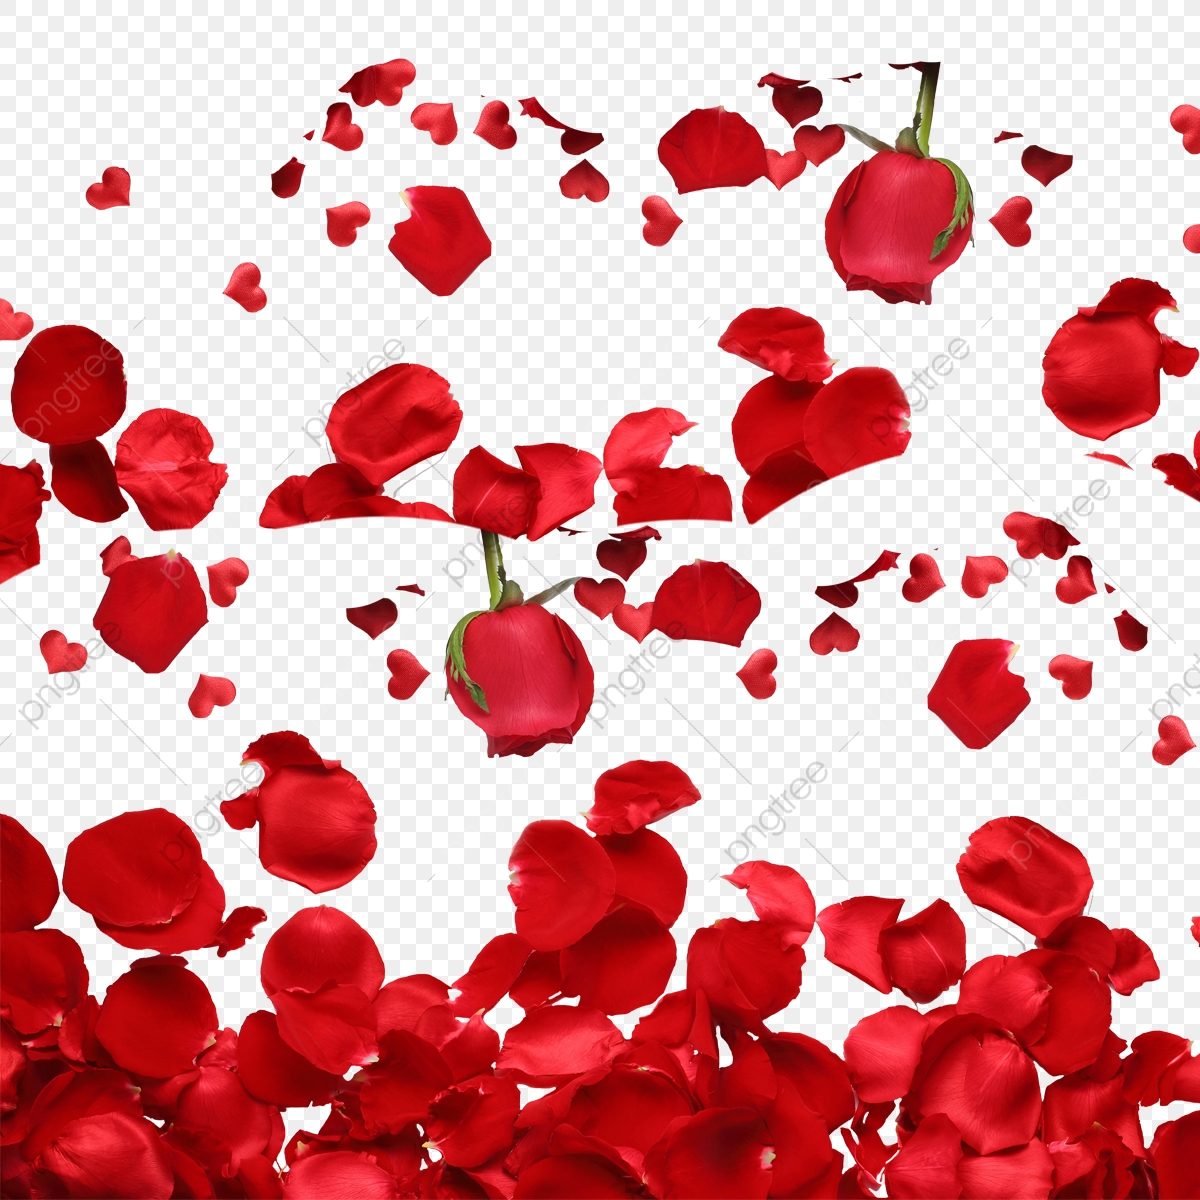 Red Rose Petals, Rose, Petal, Roses PNG Transparent Clipart.